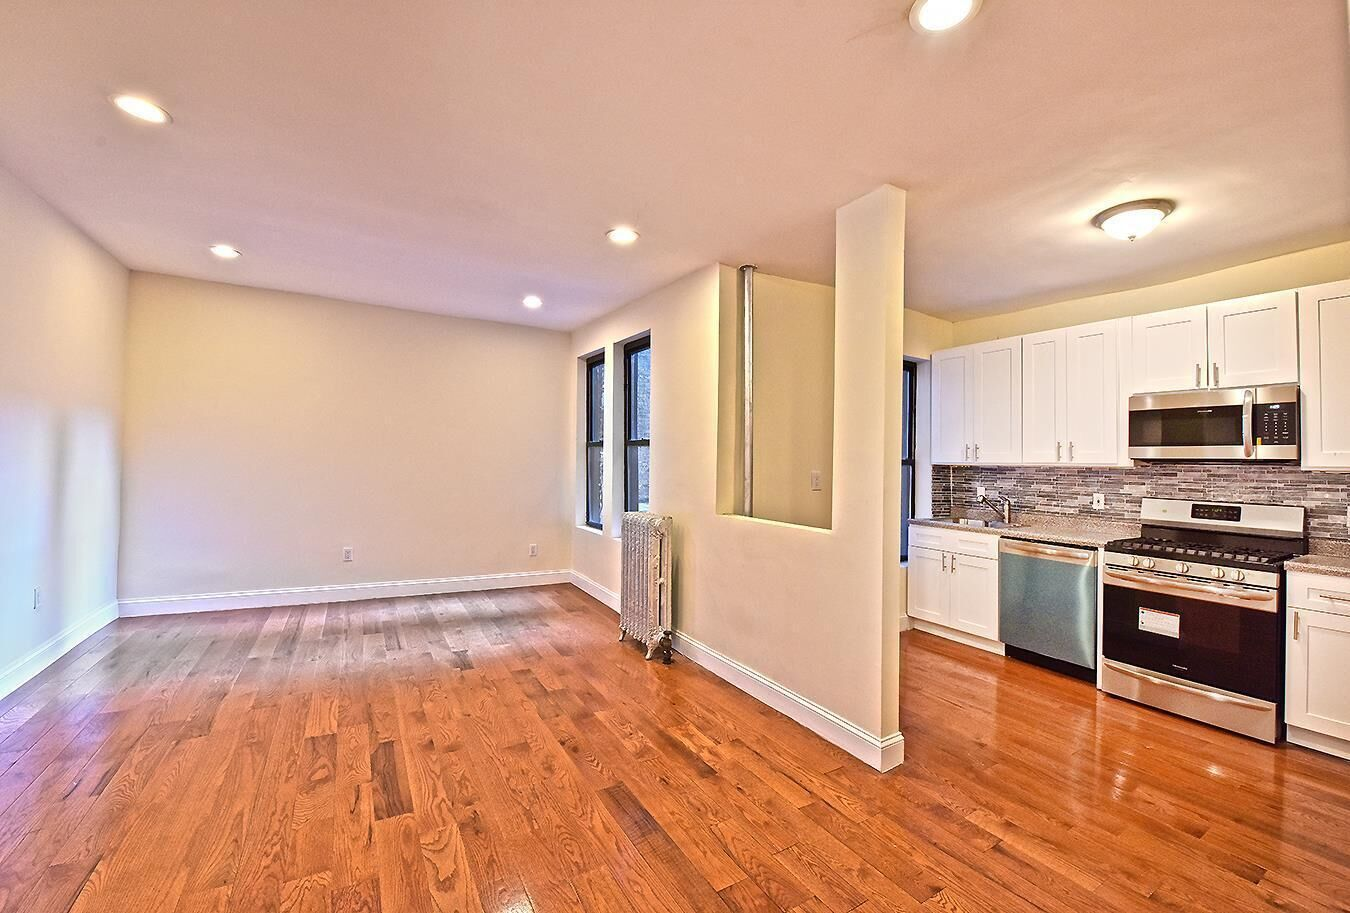 Apartment for sale at 752 West 178th Street, Apt 1-A